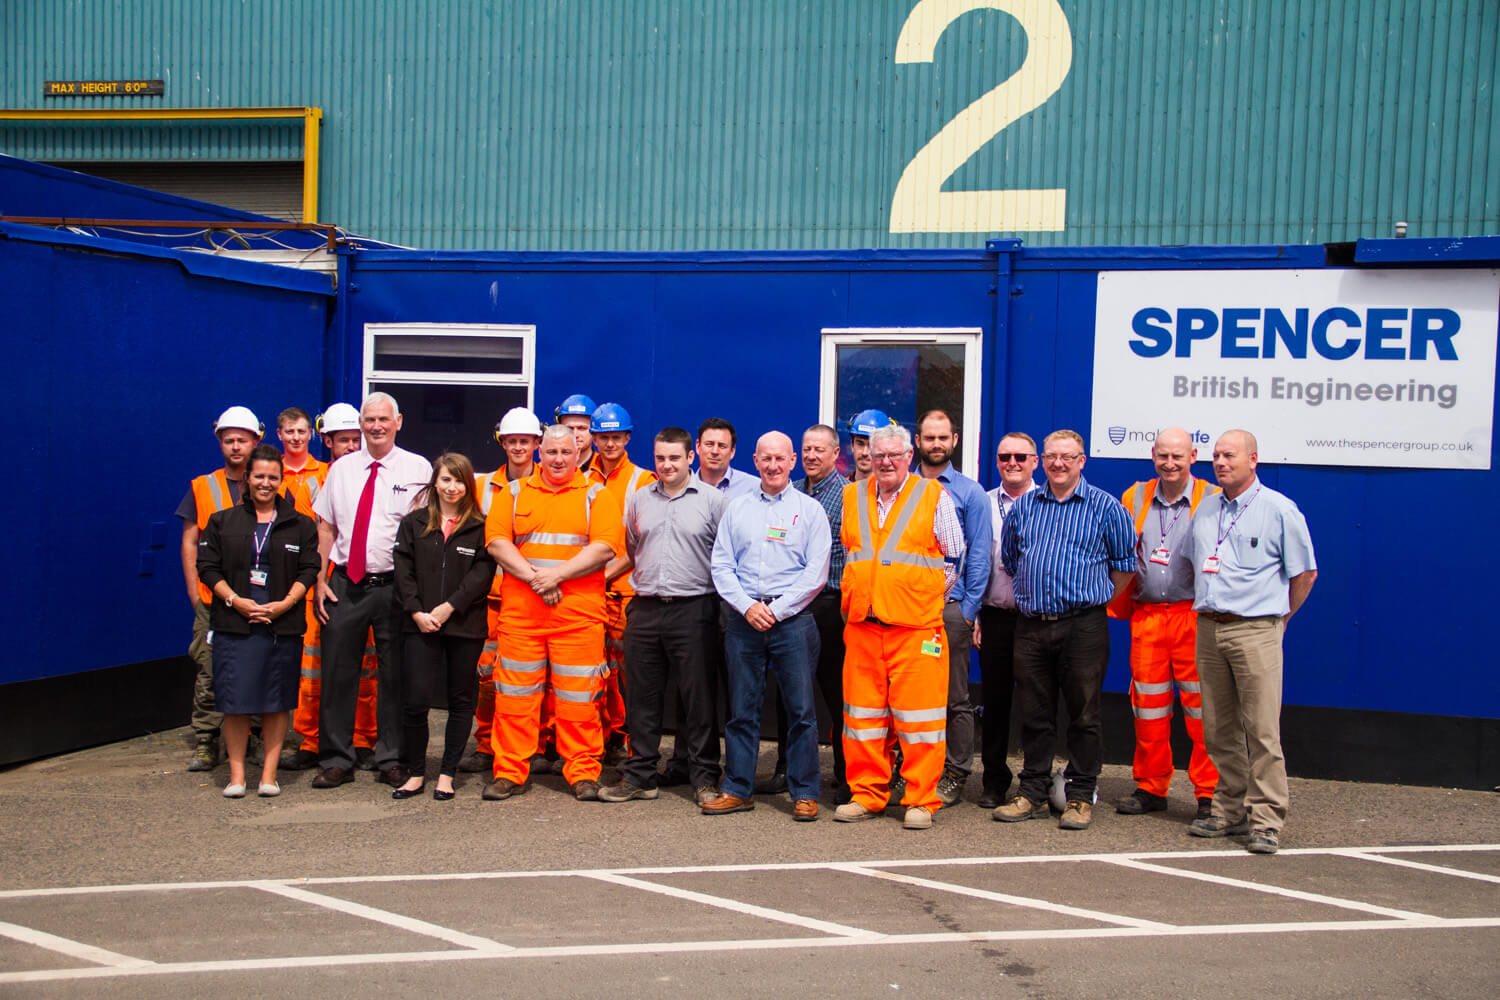 Spencer Group's Port of Tyne Team